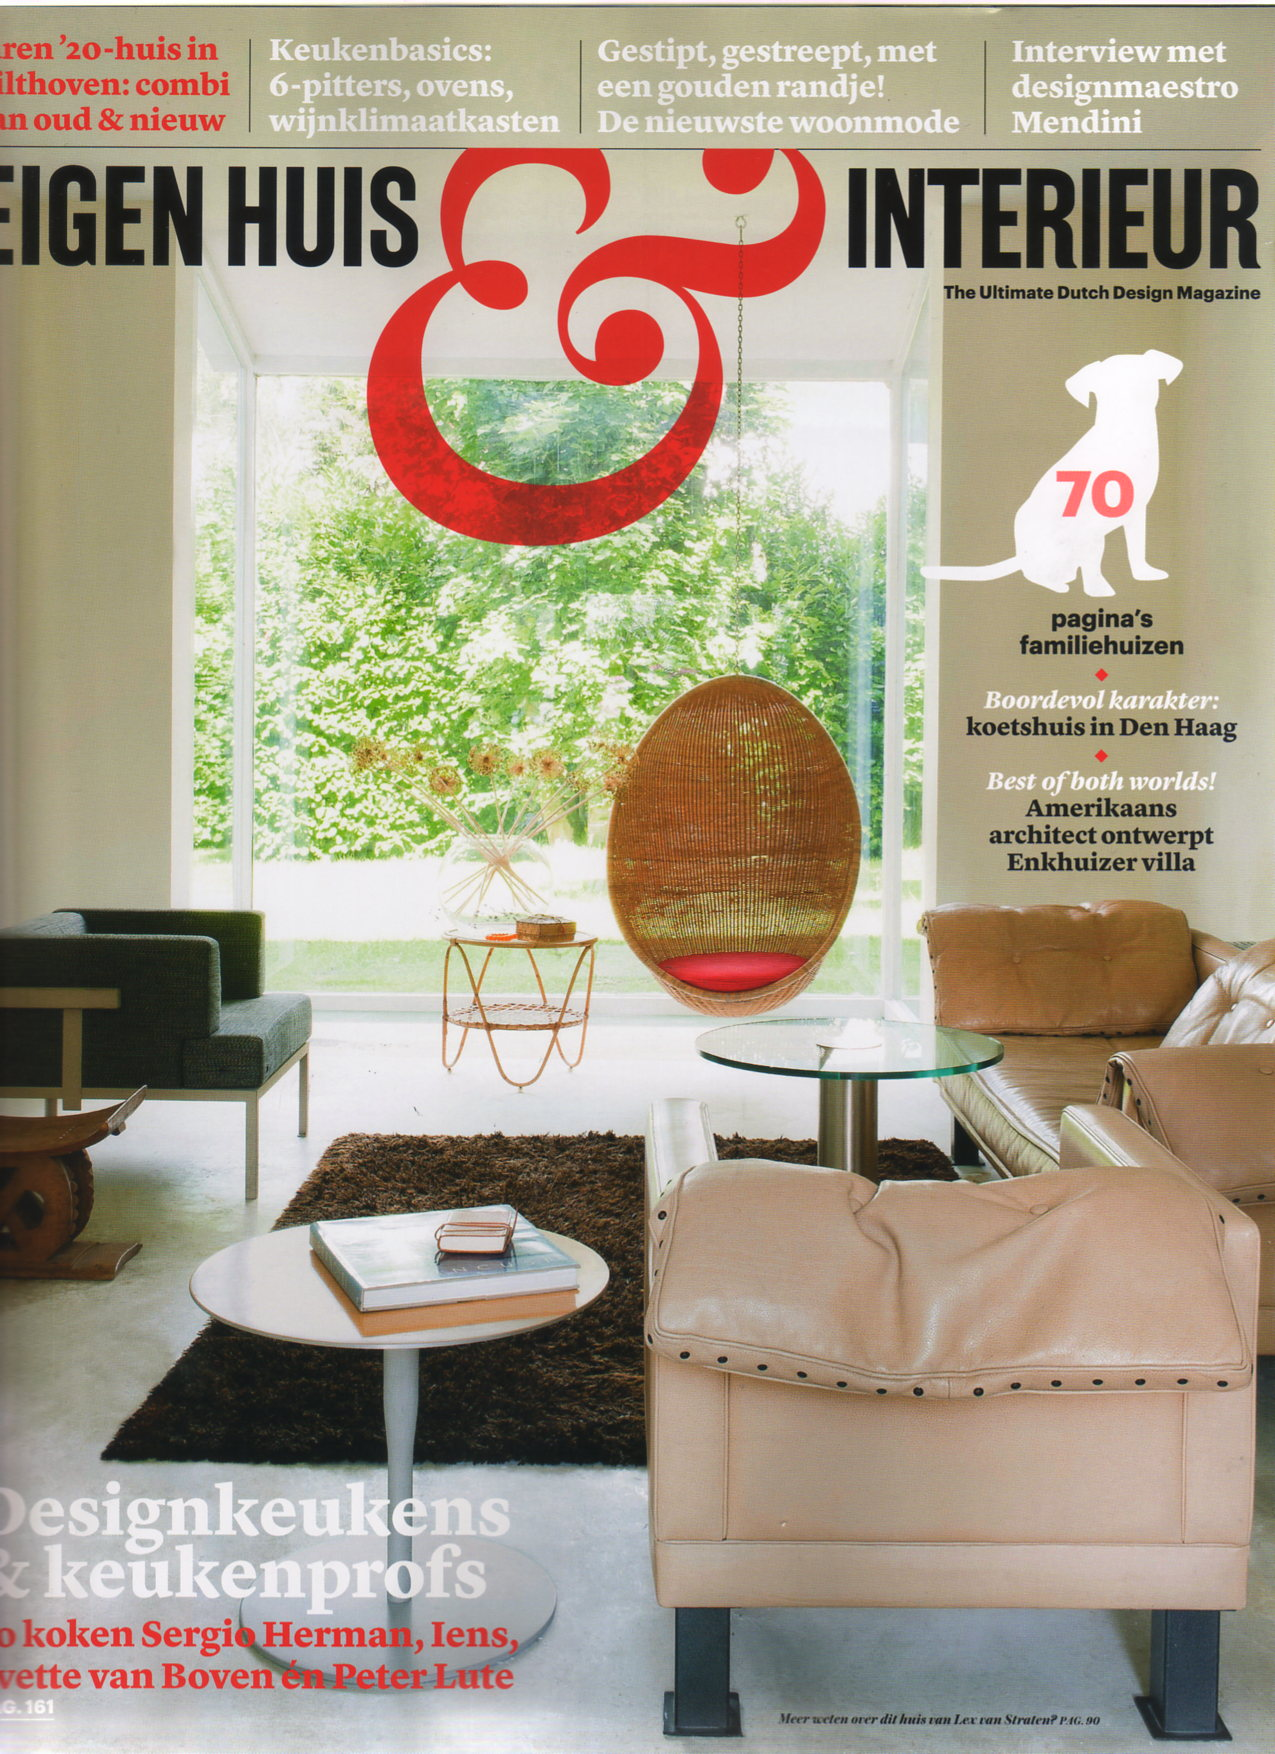 Eigen huis interieur features opposites attract melvin for Eigen huis en interieur abonnement